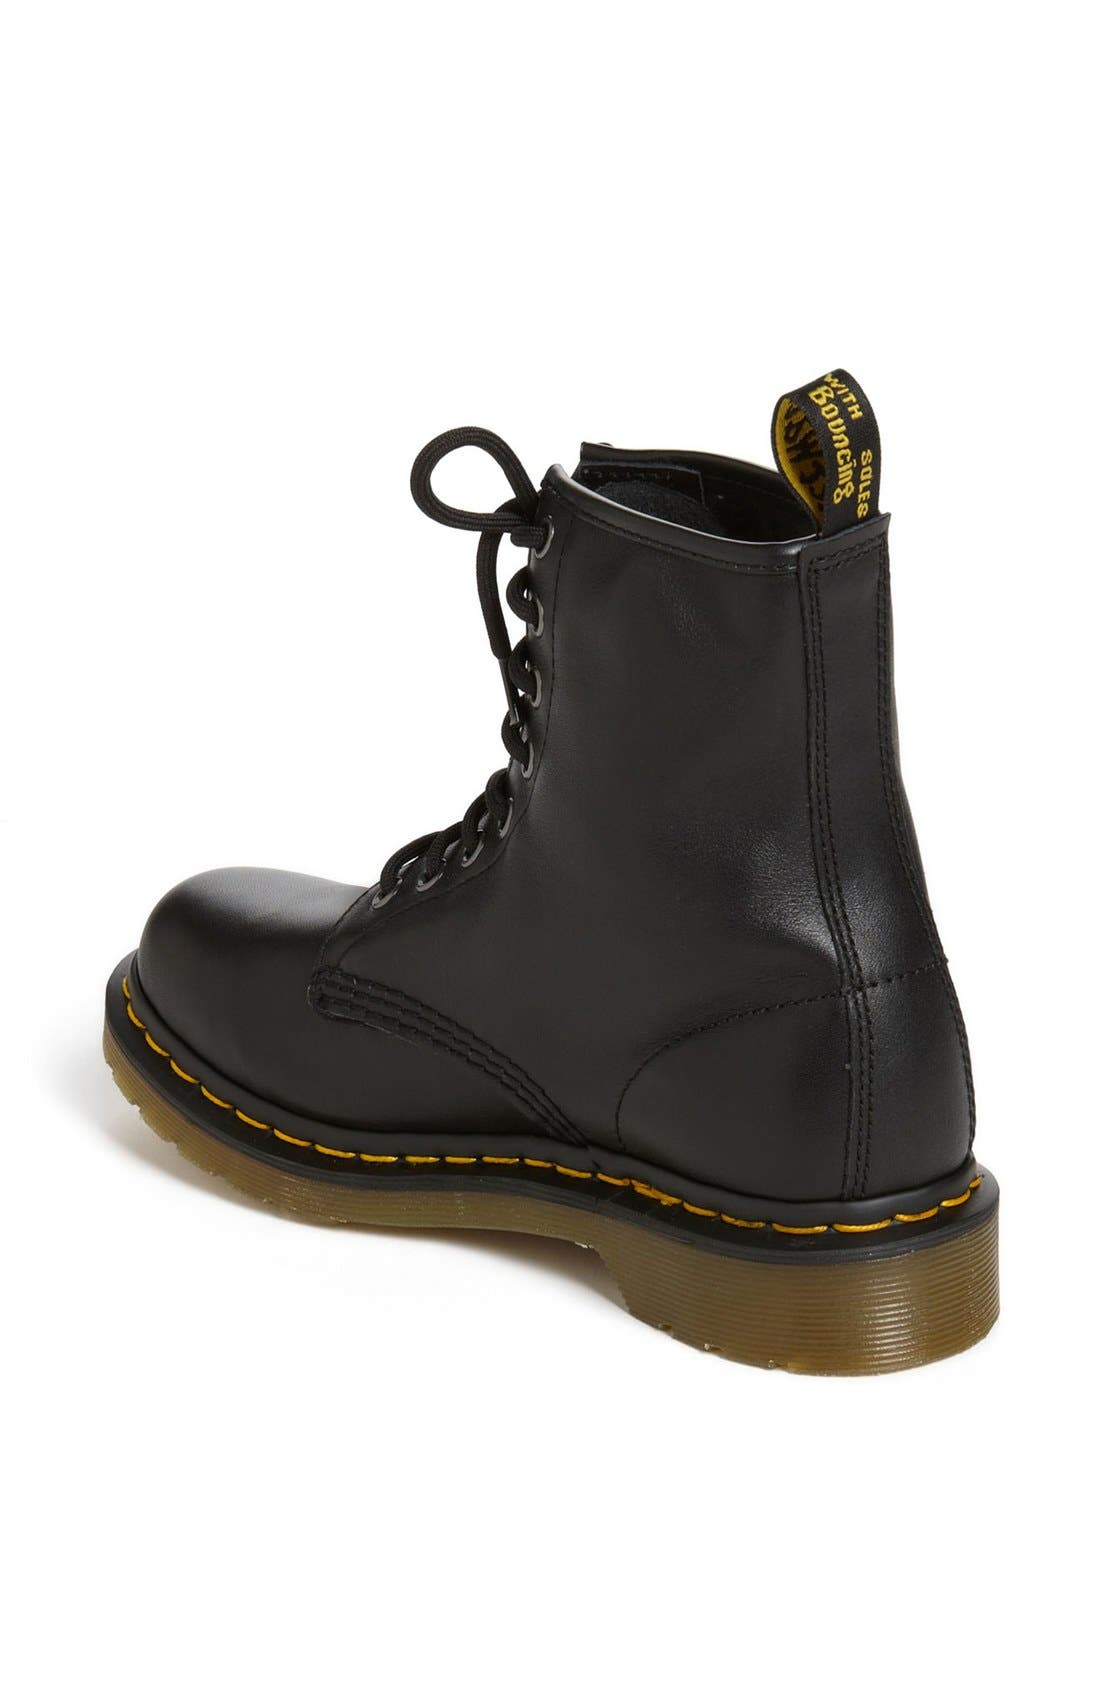 Alternate Image 2  - Dr. Martens 1460 W Boot (Women)